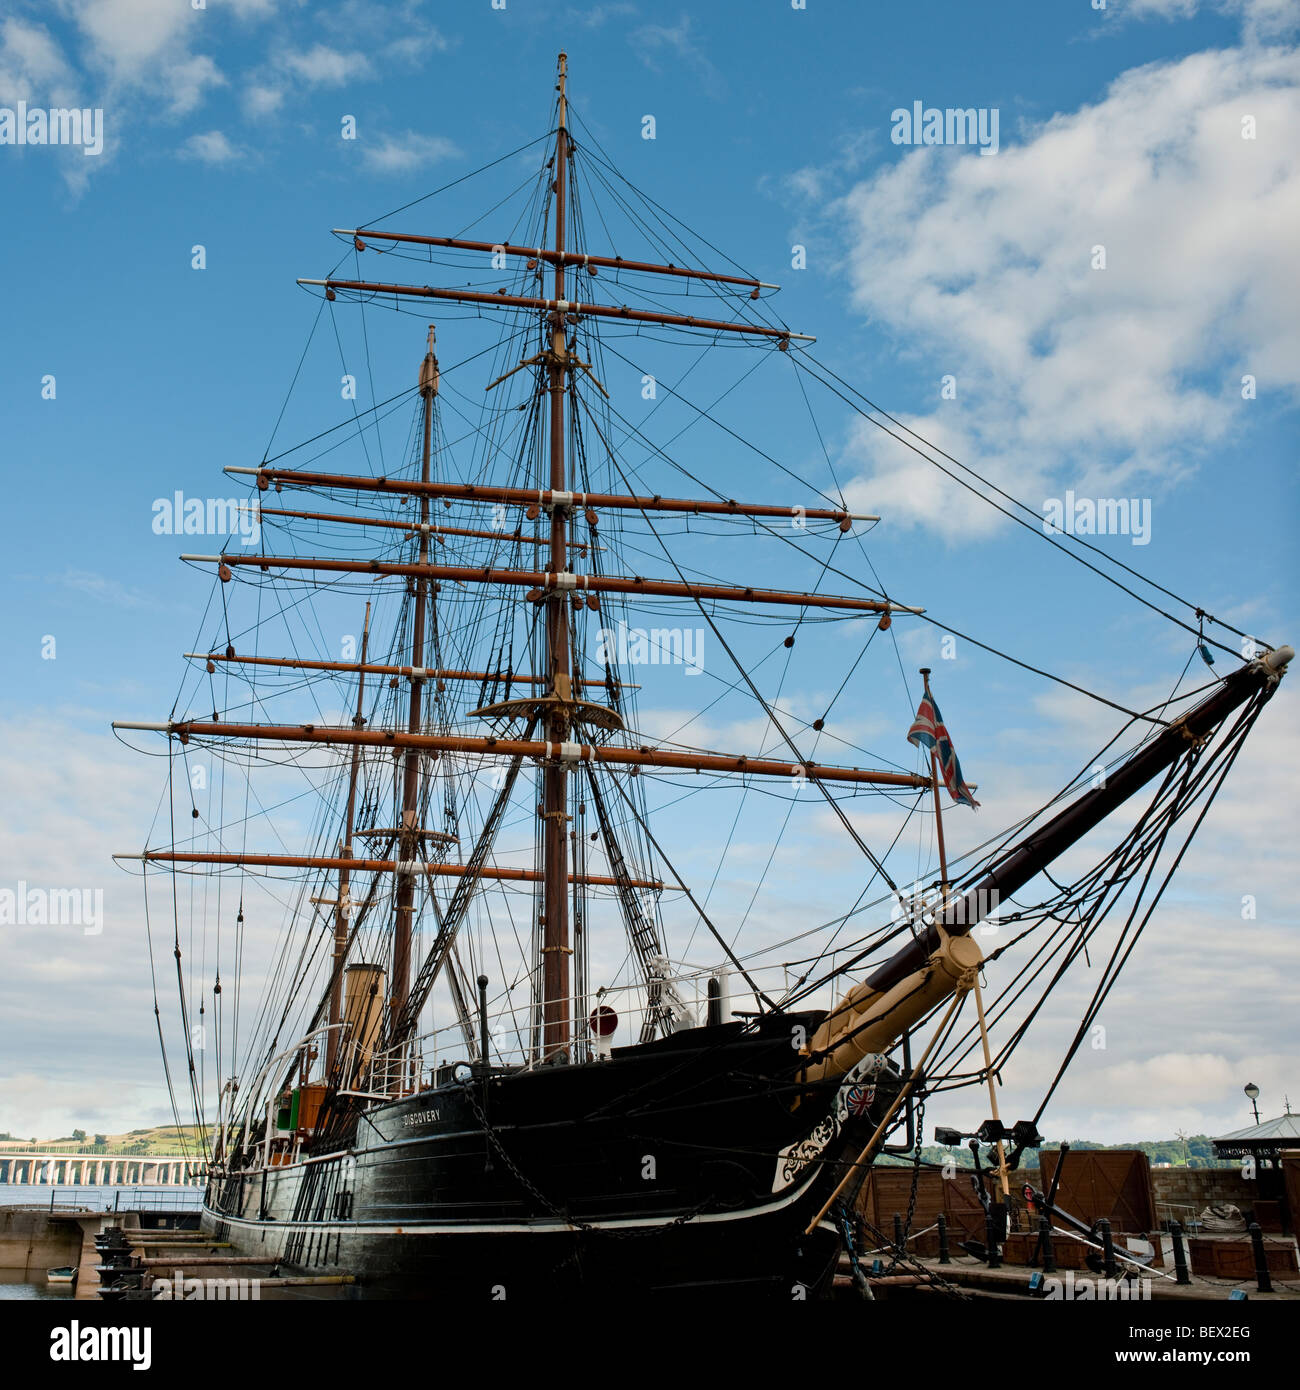 RRS Discovery, Dundee, Scotland. Antarctic expedition ship built in 1901 Stock Photo